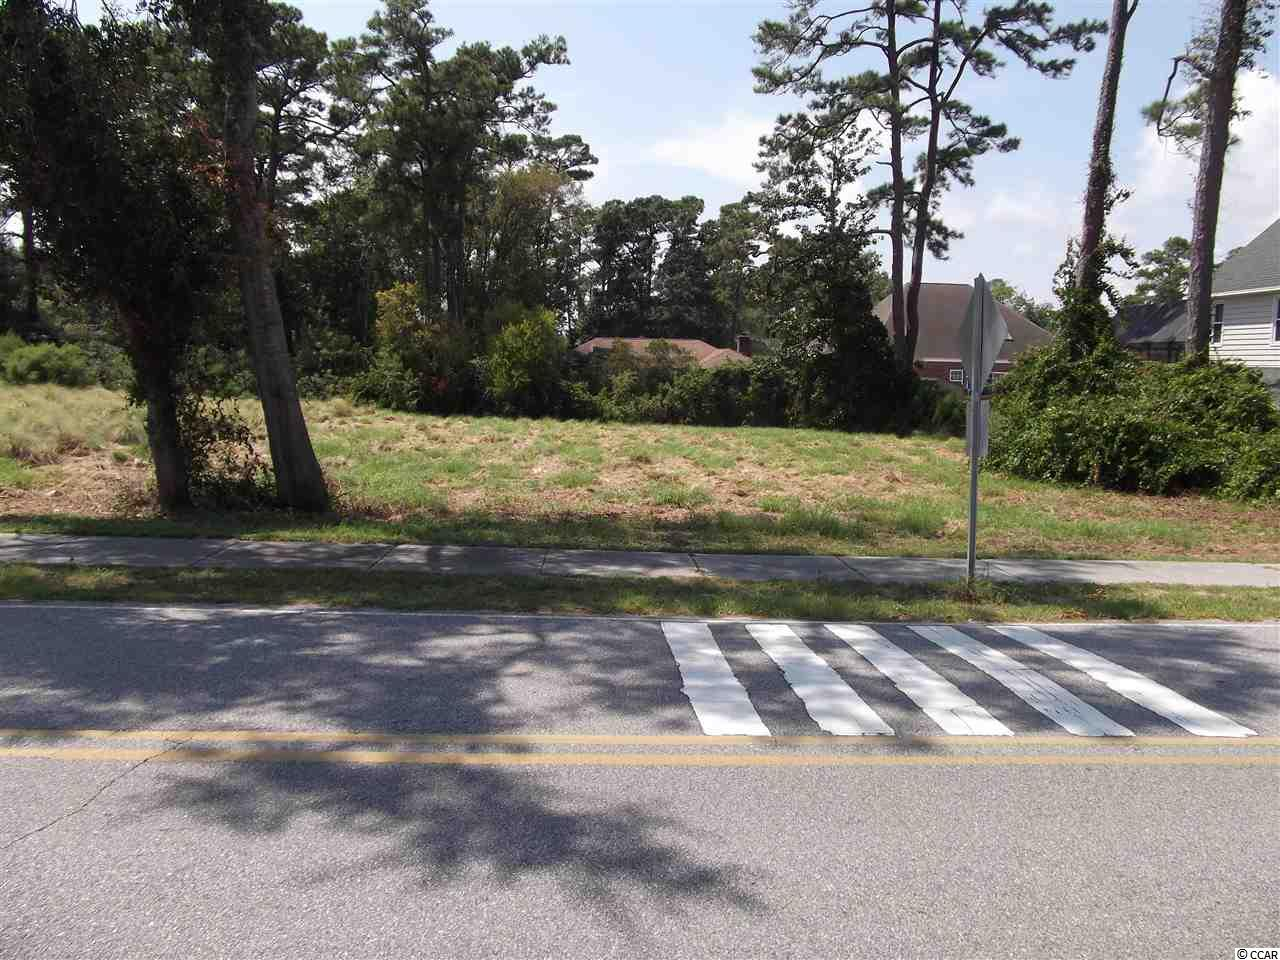 Have your home plan ready for your custom built single family home in the sought after Ocean Drive section of North Myrtle Beach. This fantastic cleared lot is located East of business Hwy 17, convenient to all area attractions, restaurants, shopping, golf, and of course the beach. Just a 4 minute walk to the beach with direct access, a quick golf cart ride to Main Street Ocean Drive. This .27 acre cleared lot is 84 feet wide x 143 feet deep. NOT located in a FEMA flood zone and NO HOA.